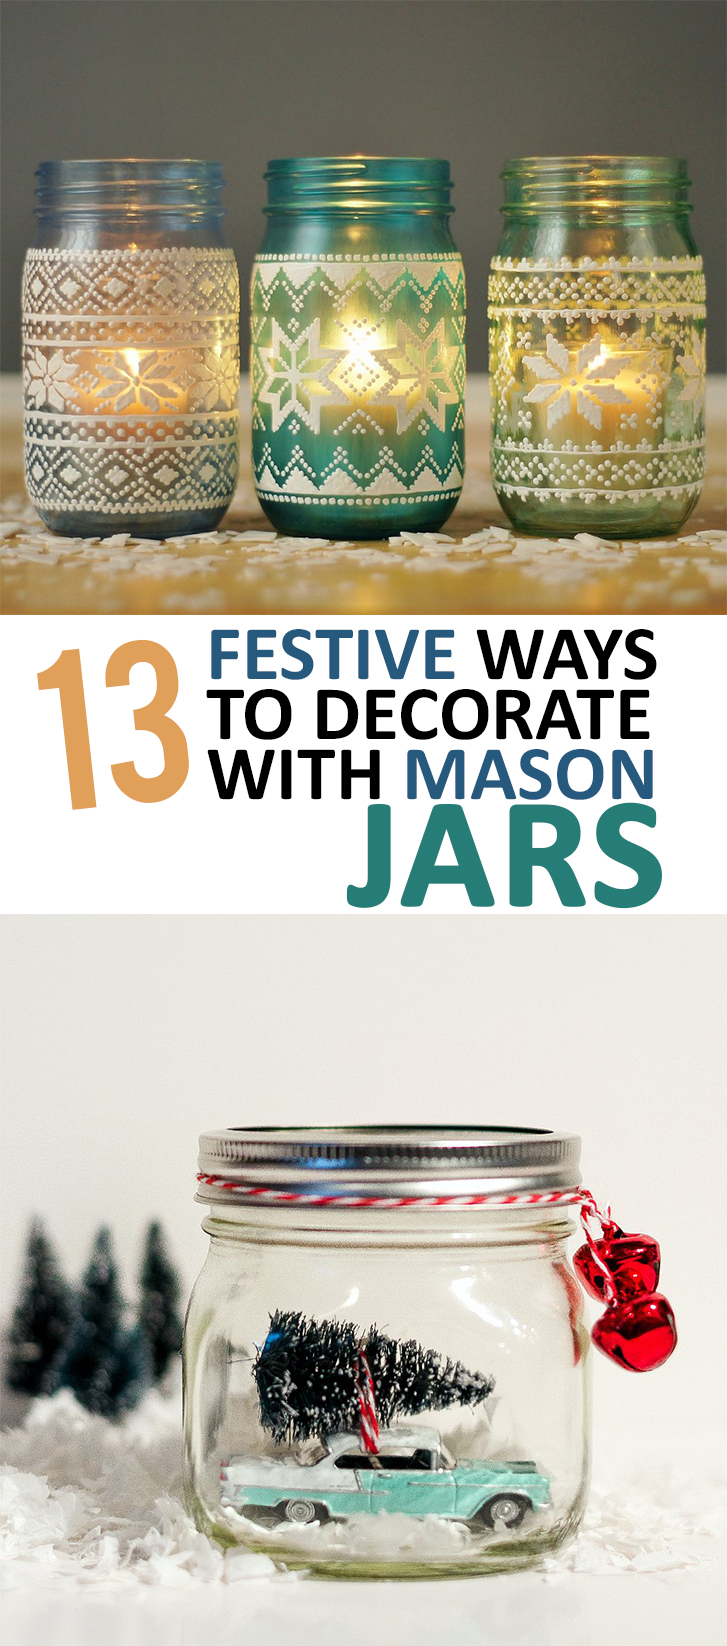 Decoating With Mason Jars, How to Decorate With Mason Jars, Christmas Decorating DIY, Easy Ways to Decorate with Mason Jars, DIY Christmas Decor, Easy Holiday Decor, Last Minute Holiday Decor Ideas